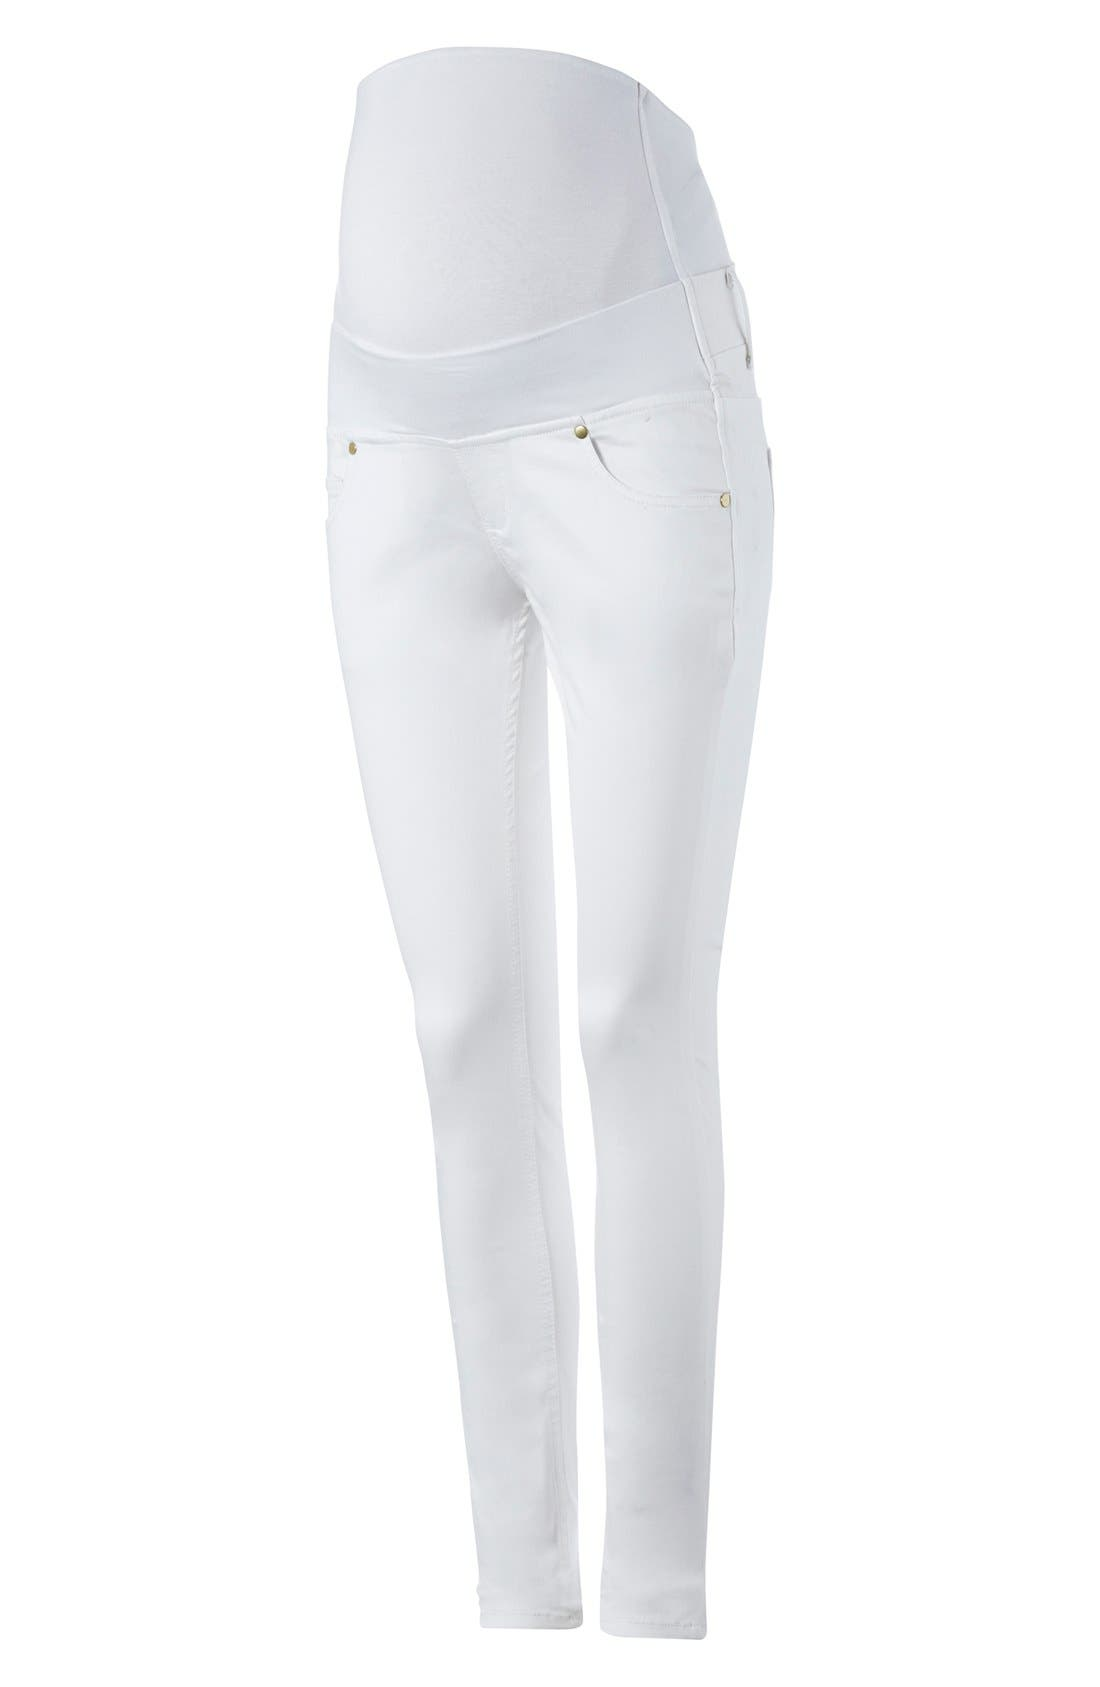 ISABELLA OLIVER 'Zadie' Stretch Maternity Skinny Jeans